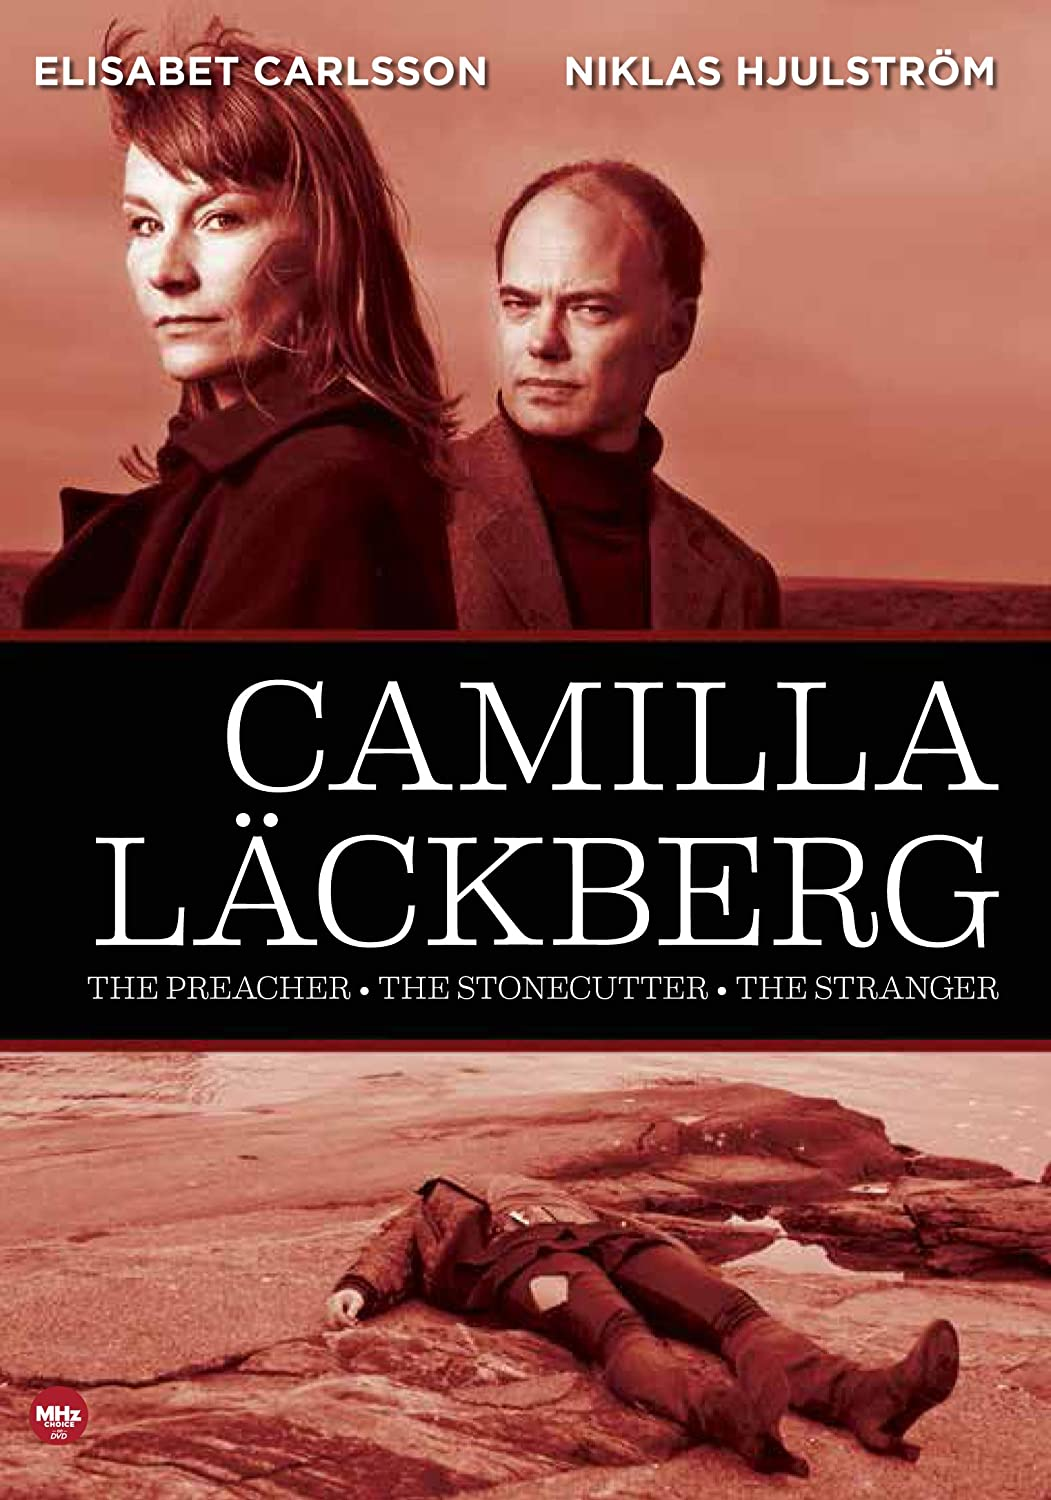 Camilla Läckberg: The Preacher, The Stonecutter, and The Stranger